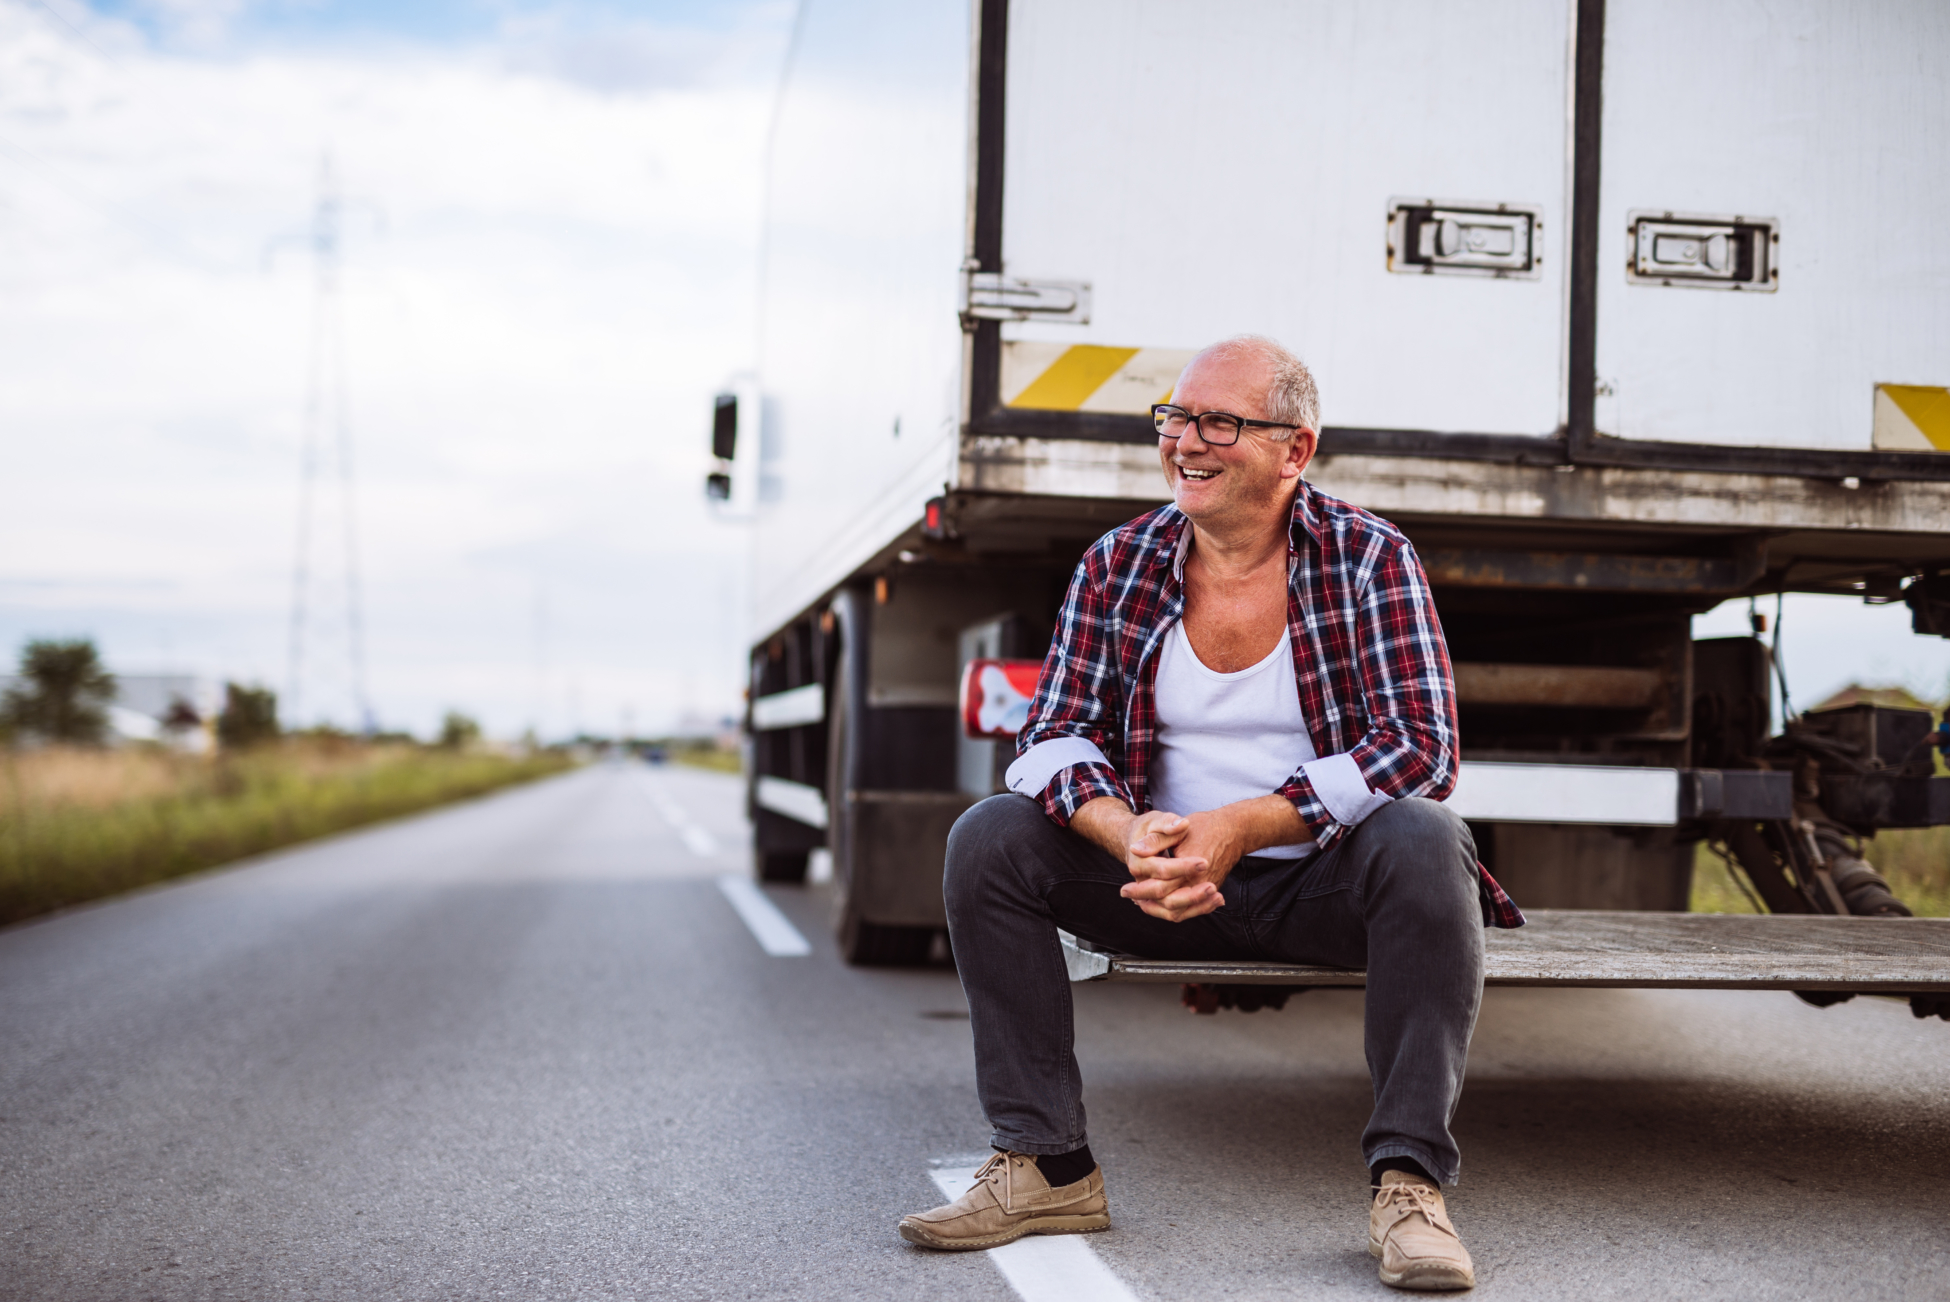 Senior truck driver posing next to his truck.